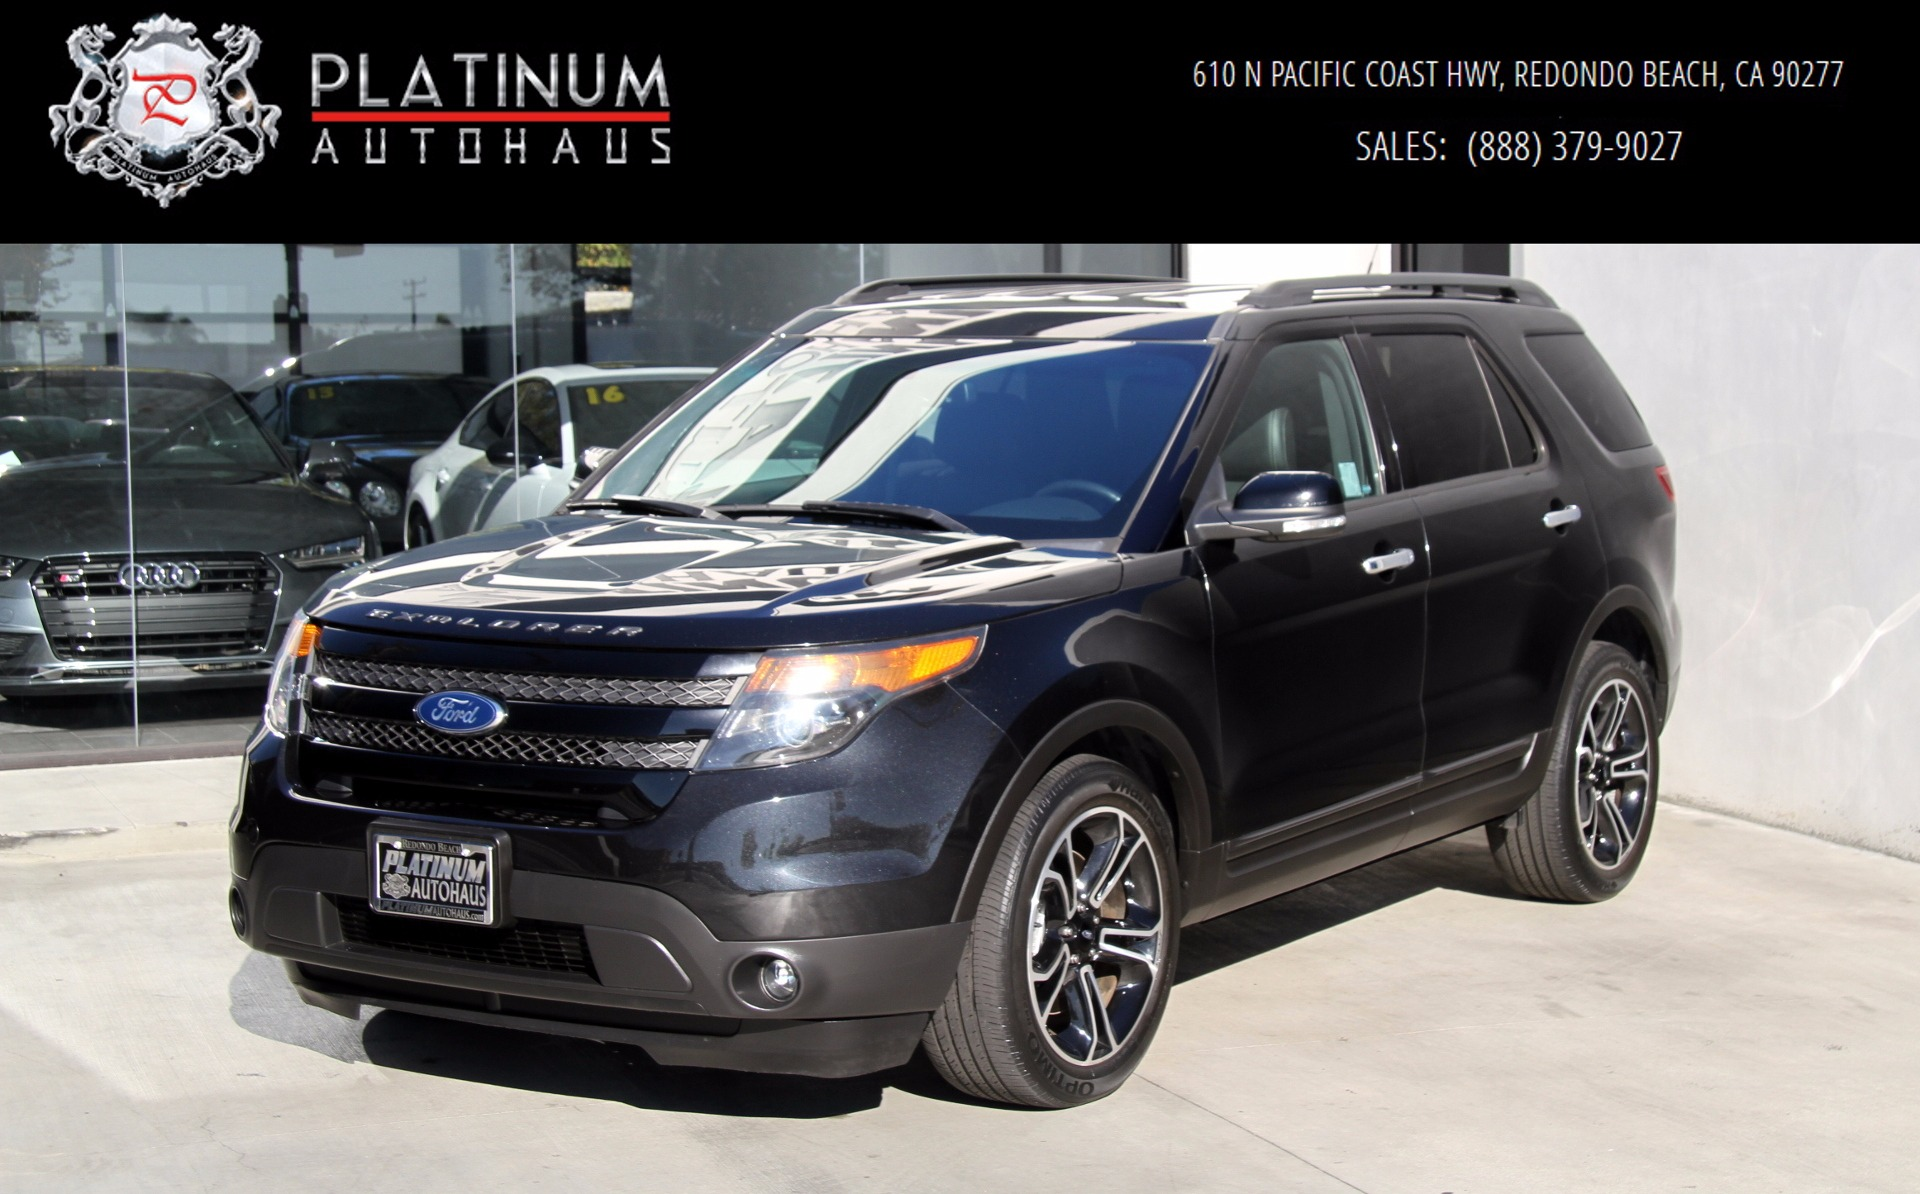 Used 2014 ford explorer sport 4wd redondo beach